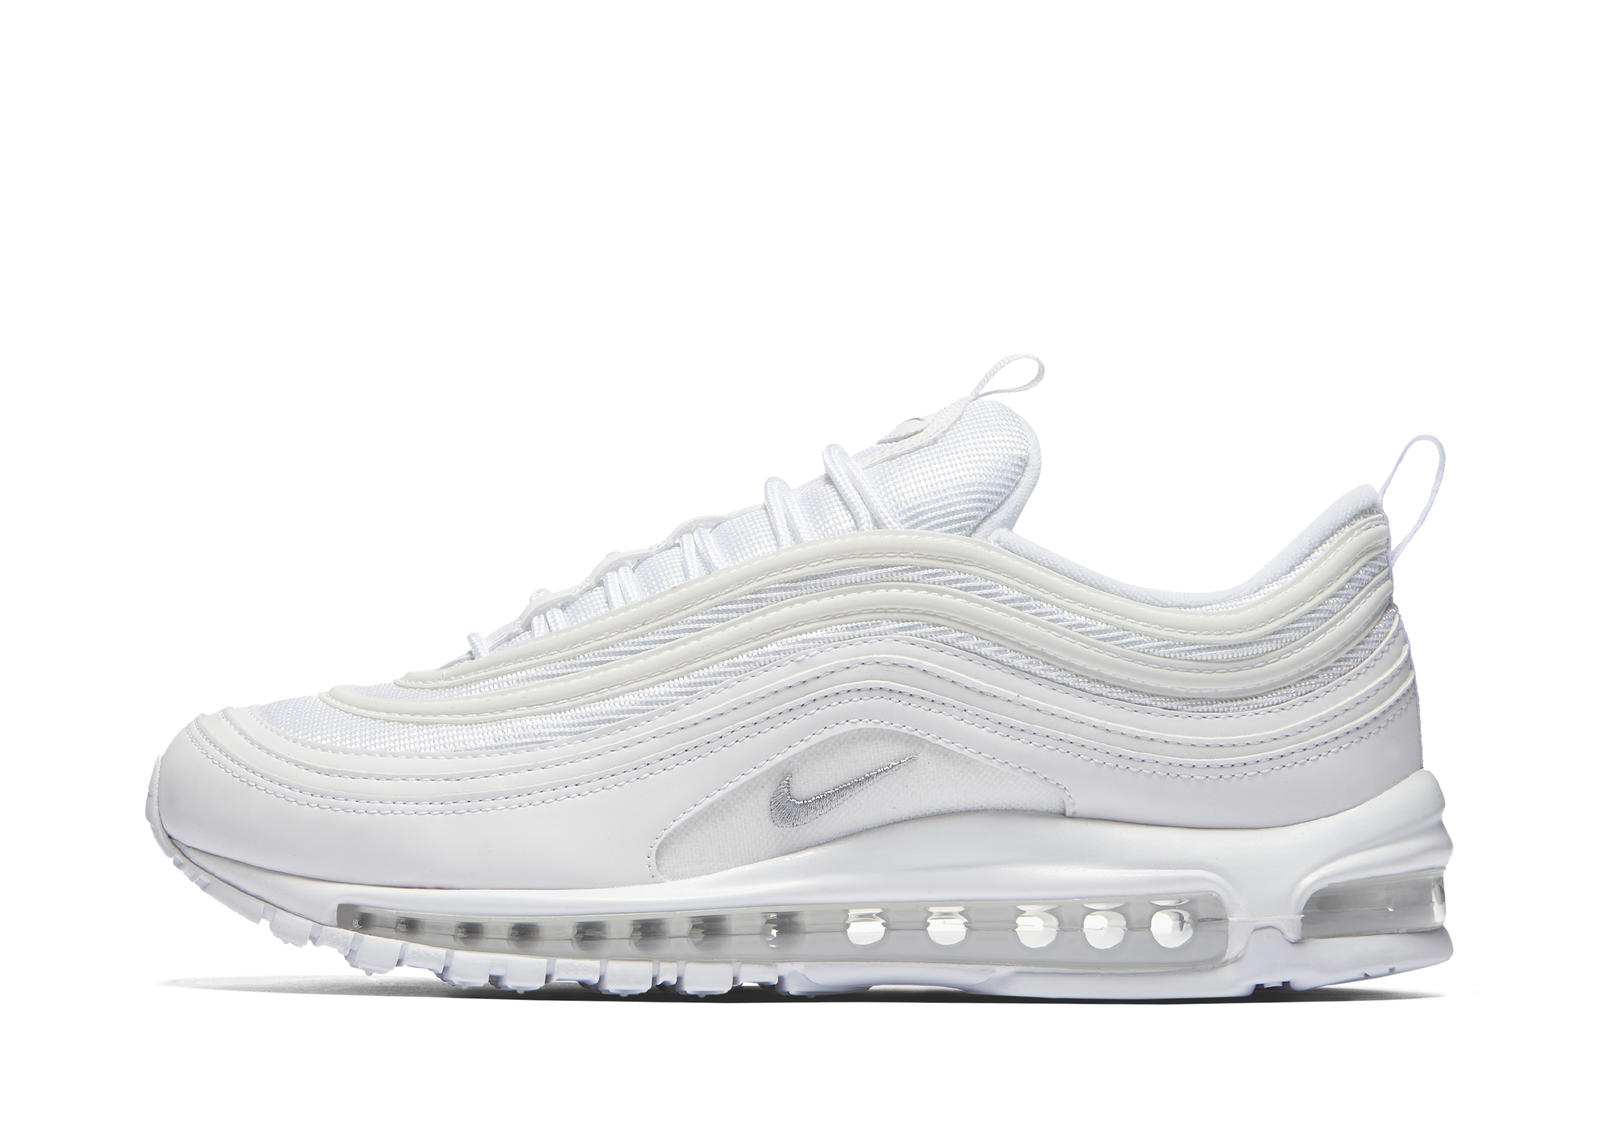 nike air max 97 shoes